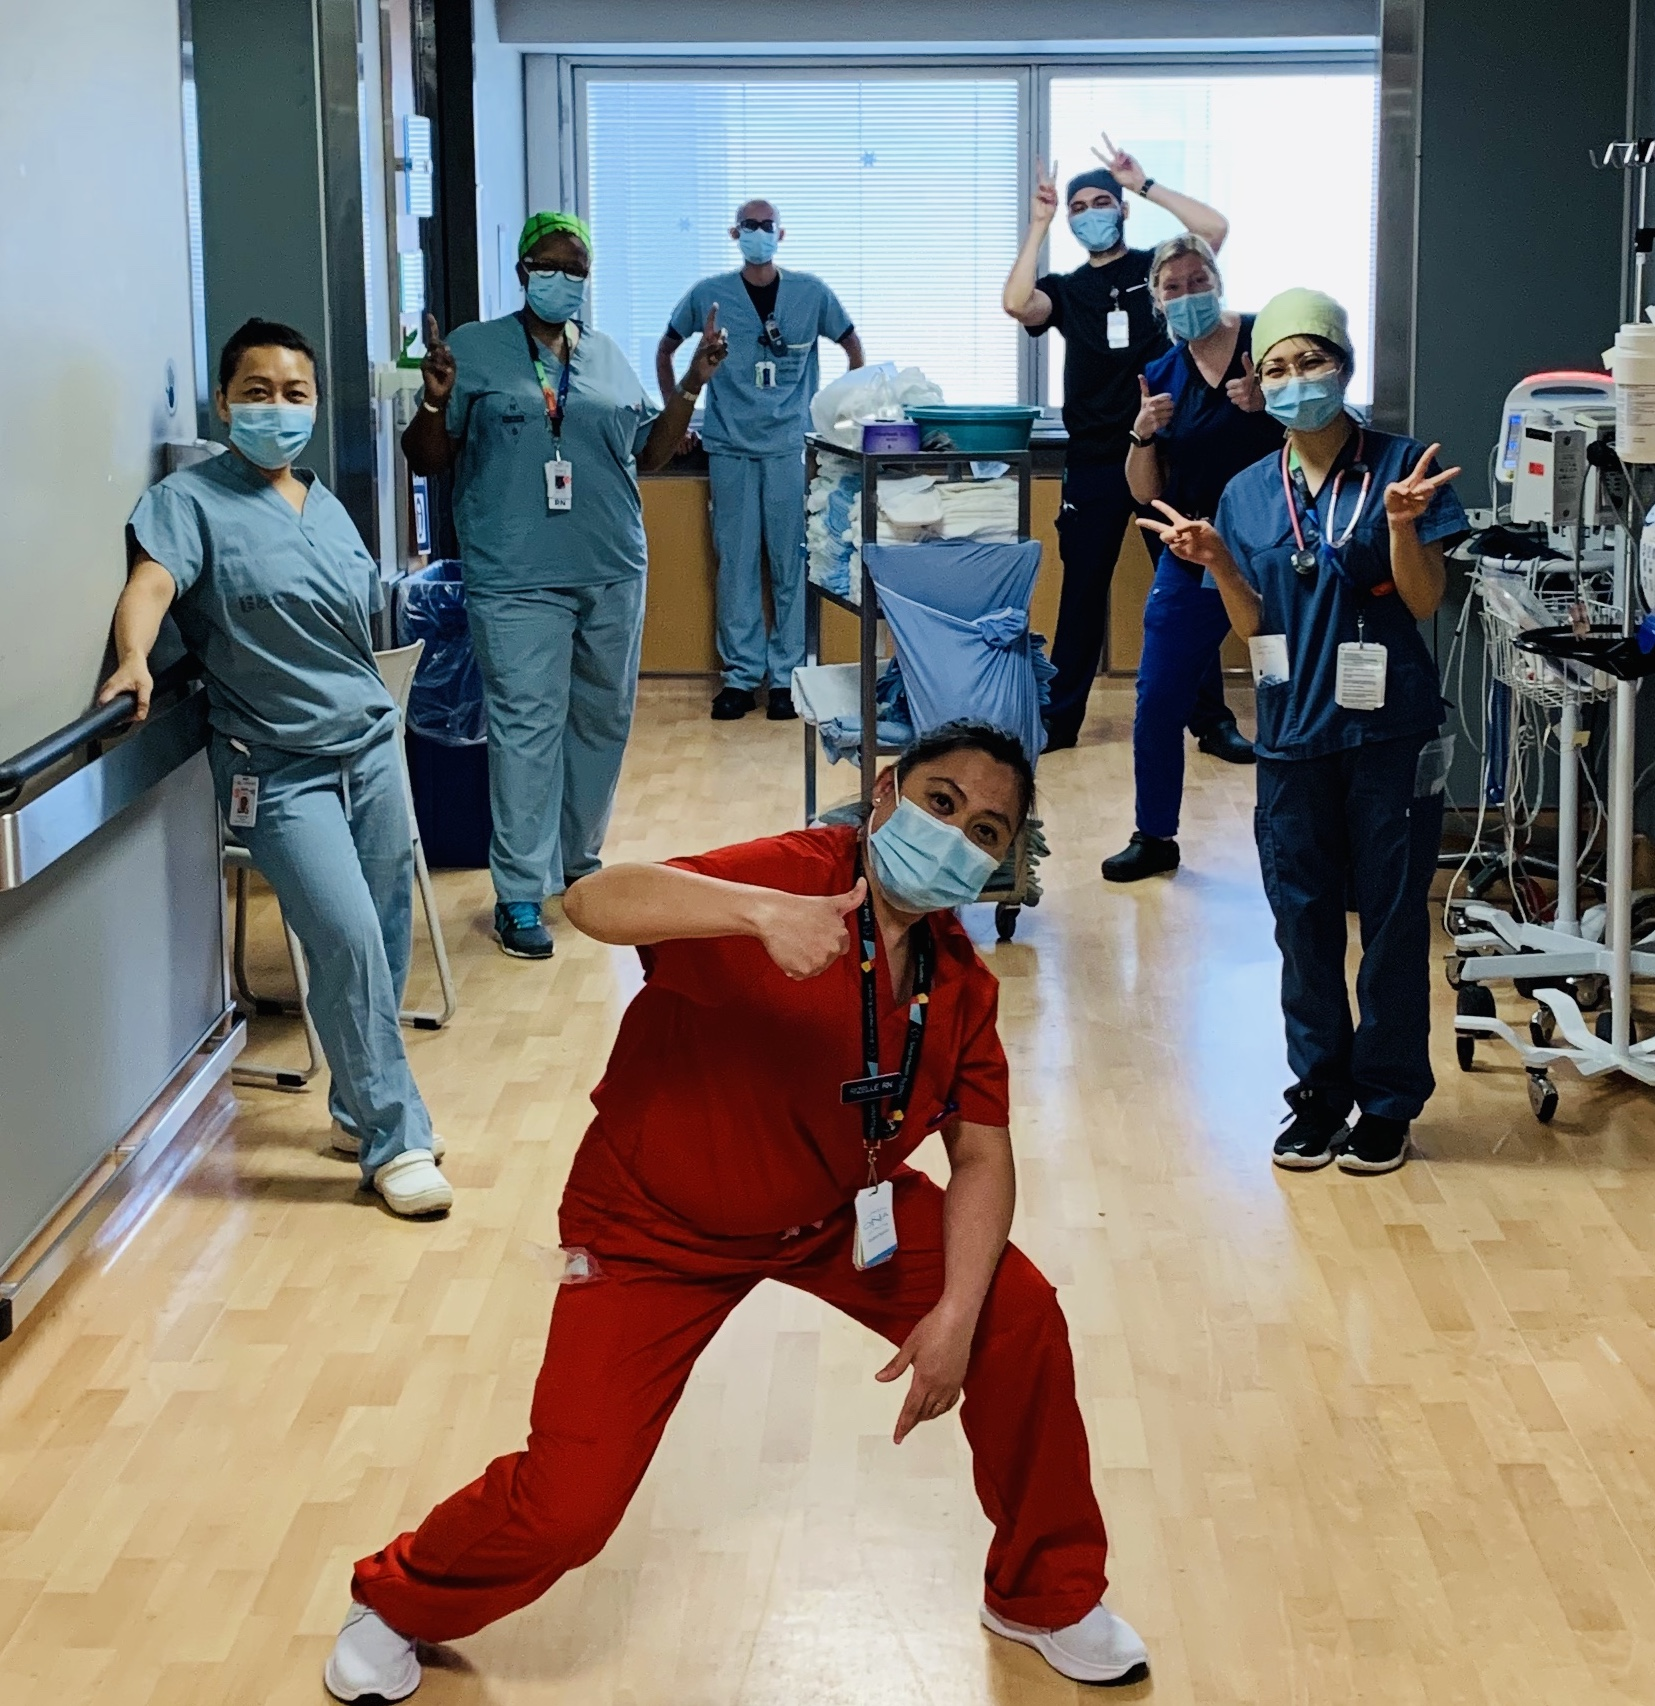 Hospital employees in a hospital hallway with medical equipment in the background. They are wearing scrubs and masks and standing apart from each other. Some are making peace signs or thumbs up signs with their hands.